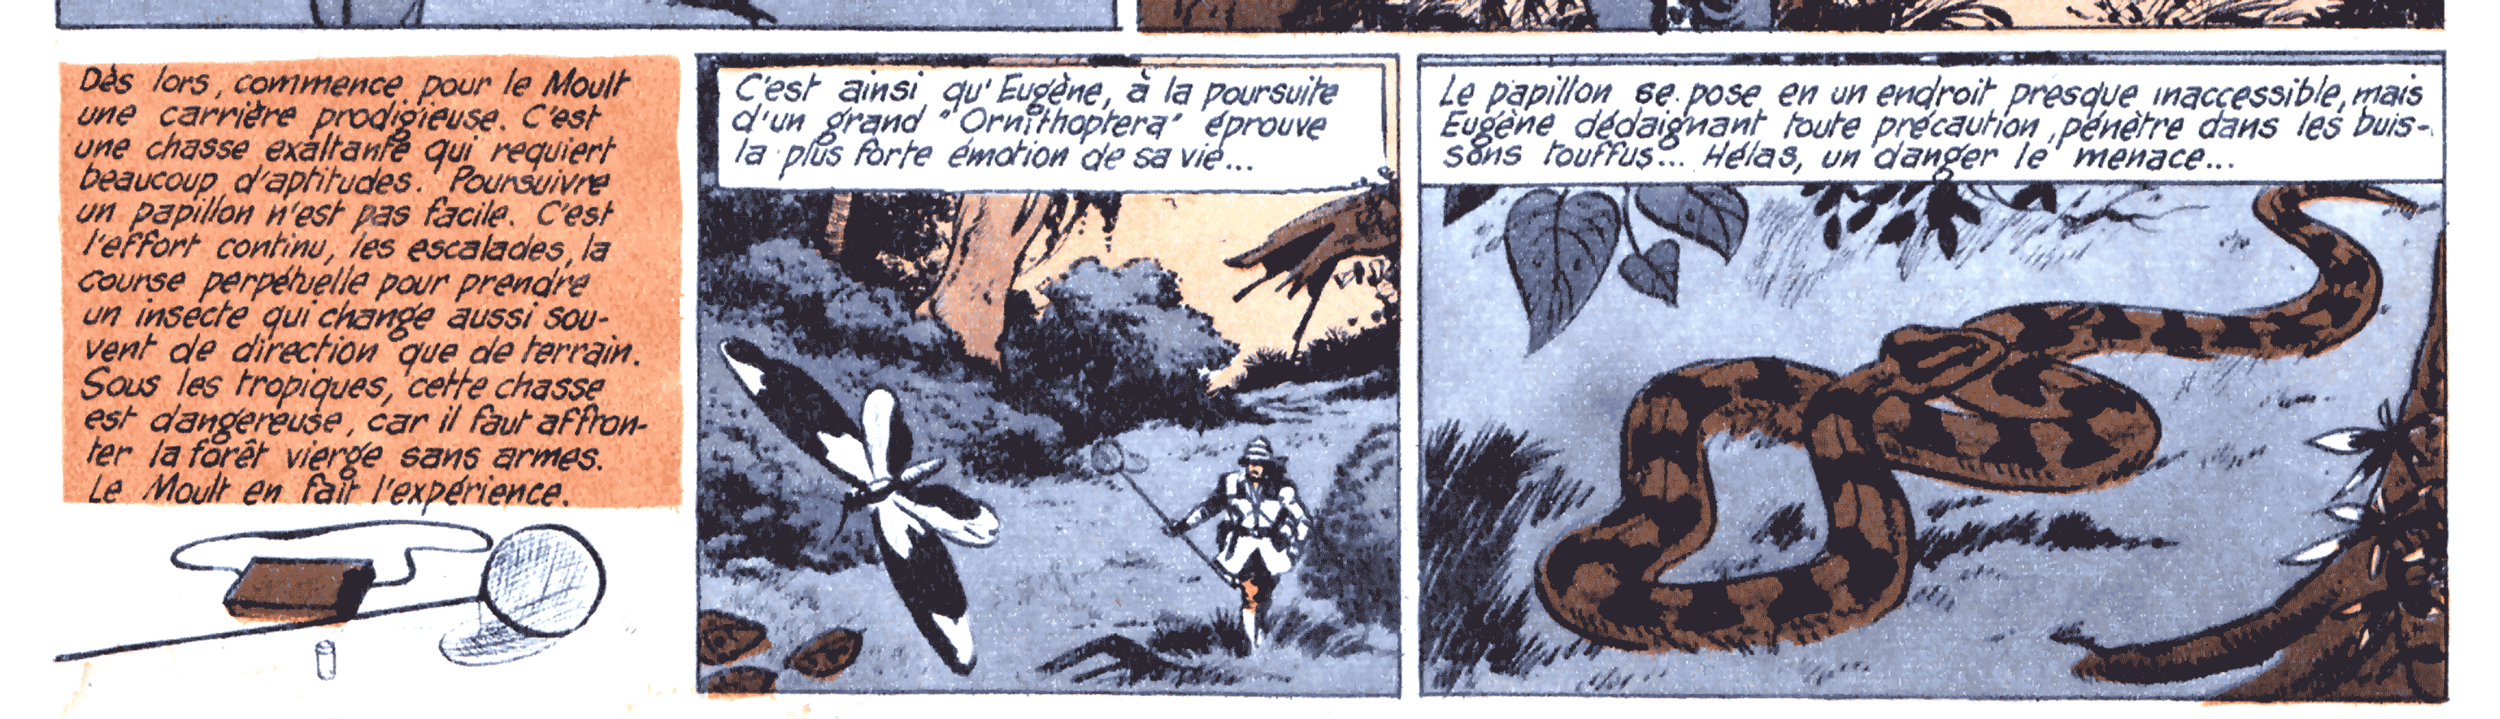 """TINTIN MAGAZINE: №396 24 May 1956 """"The Ephemeral Carousel"""" (4 pages on the life of Eugène Le Moult)"""